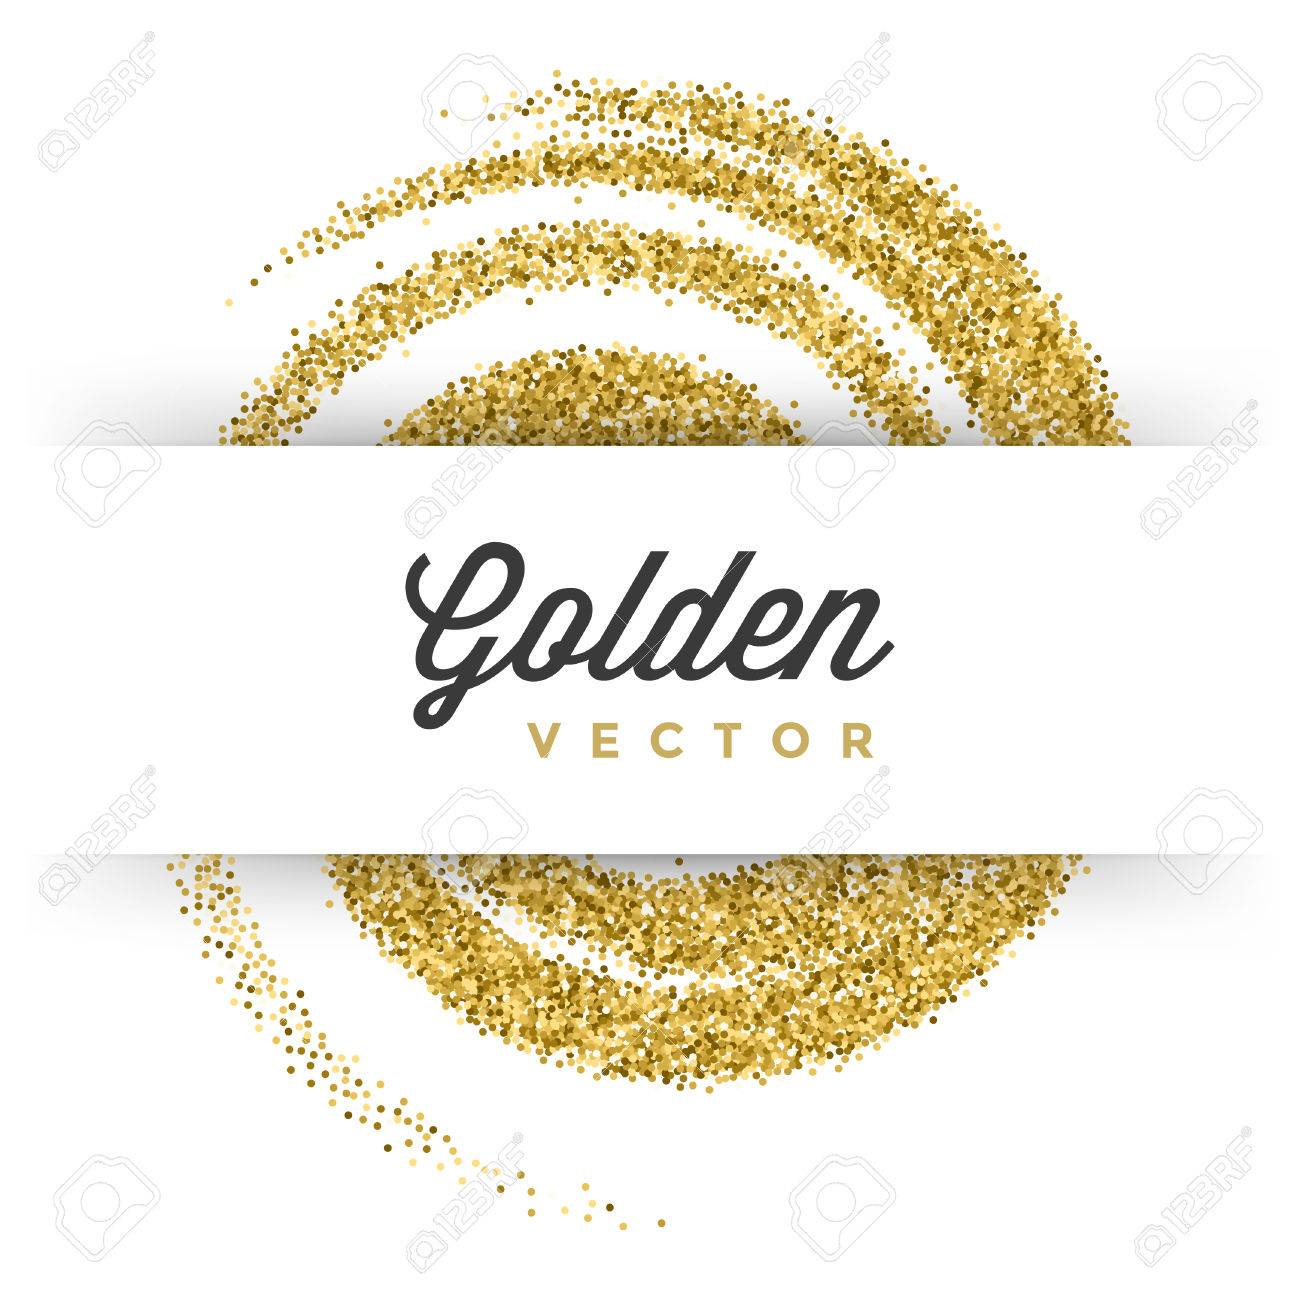 Gold glitter bright vector transparent background golden sparkles - Gold Confetti Gold Glitter Sparkles Bright Confetti White Vector Background Good For Greeting Gold